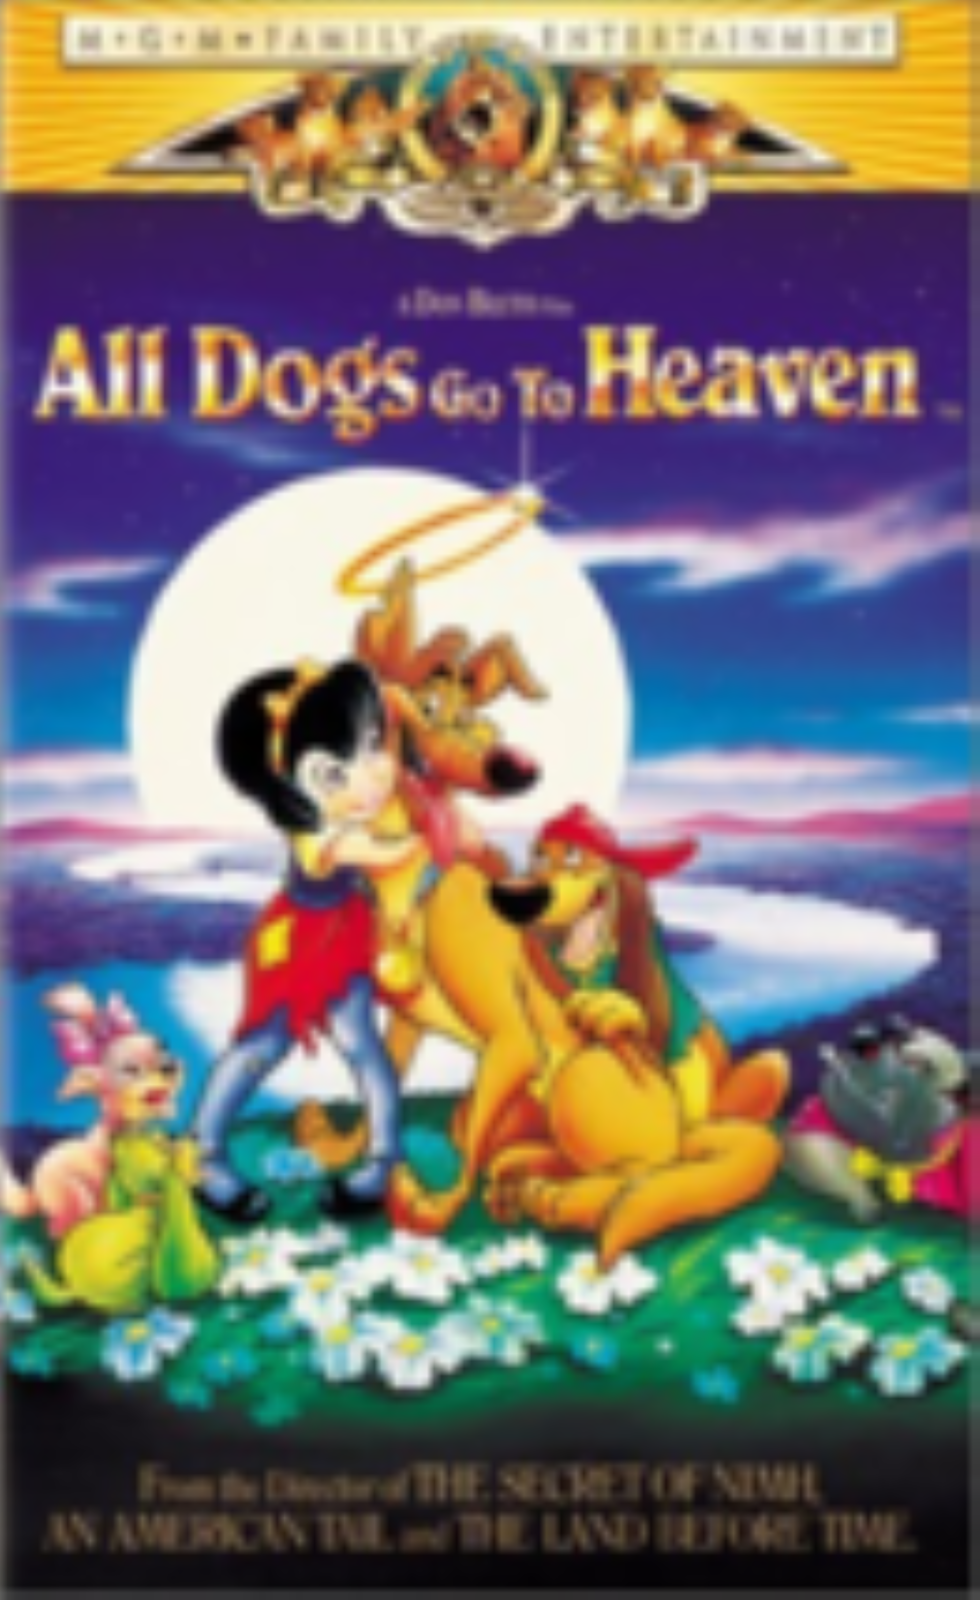 All Dogs Go to Heaven Vhs